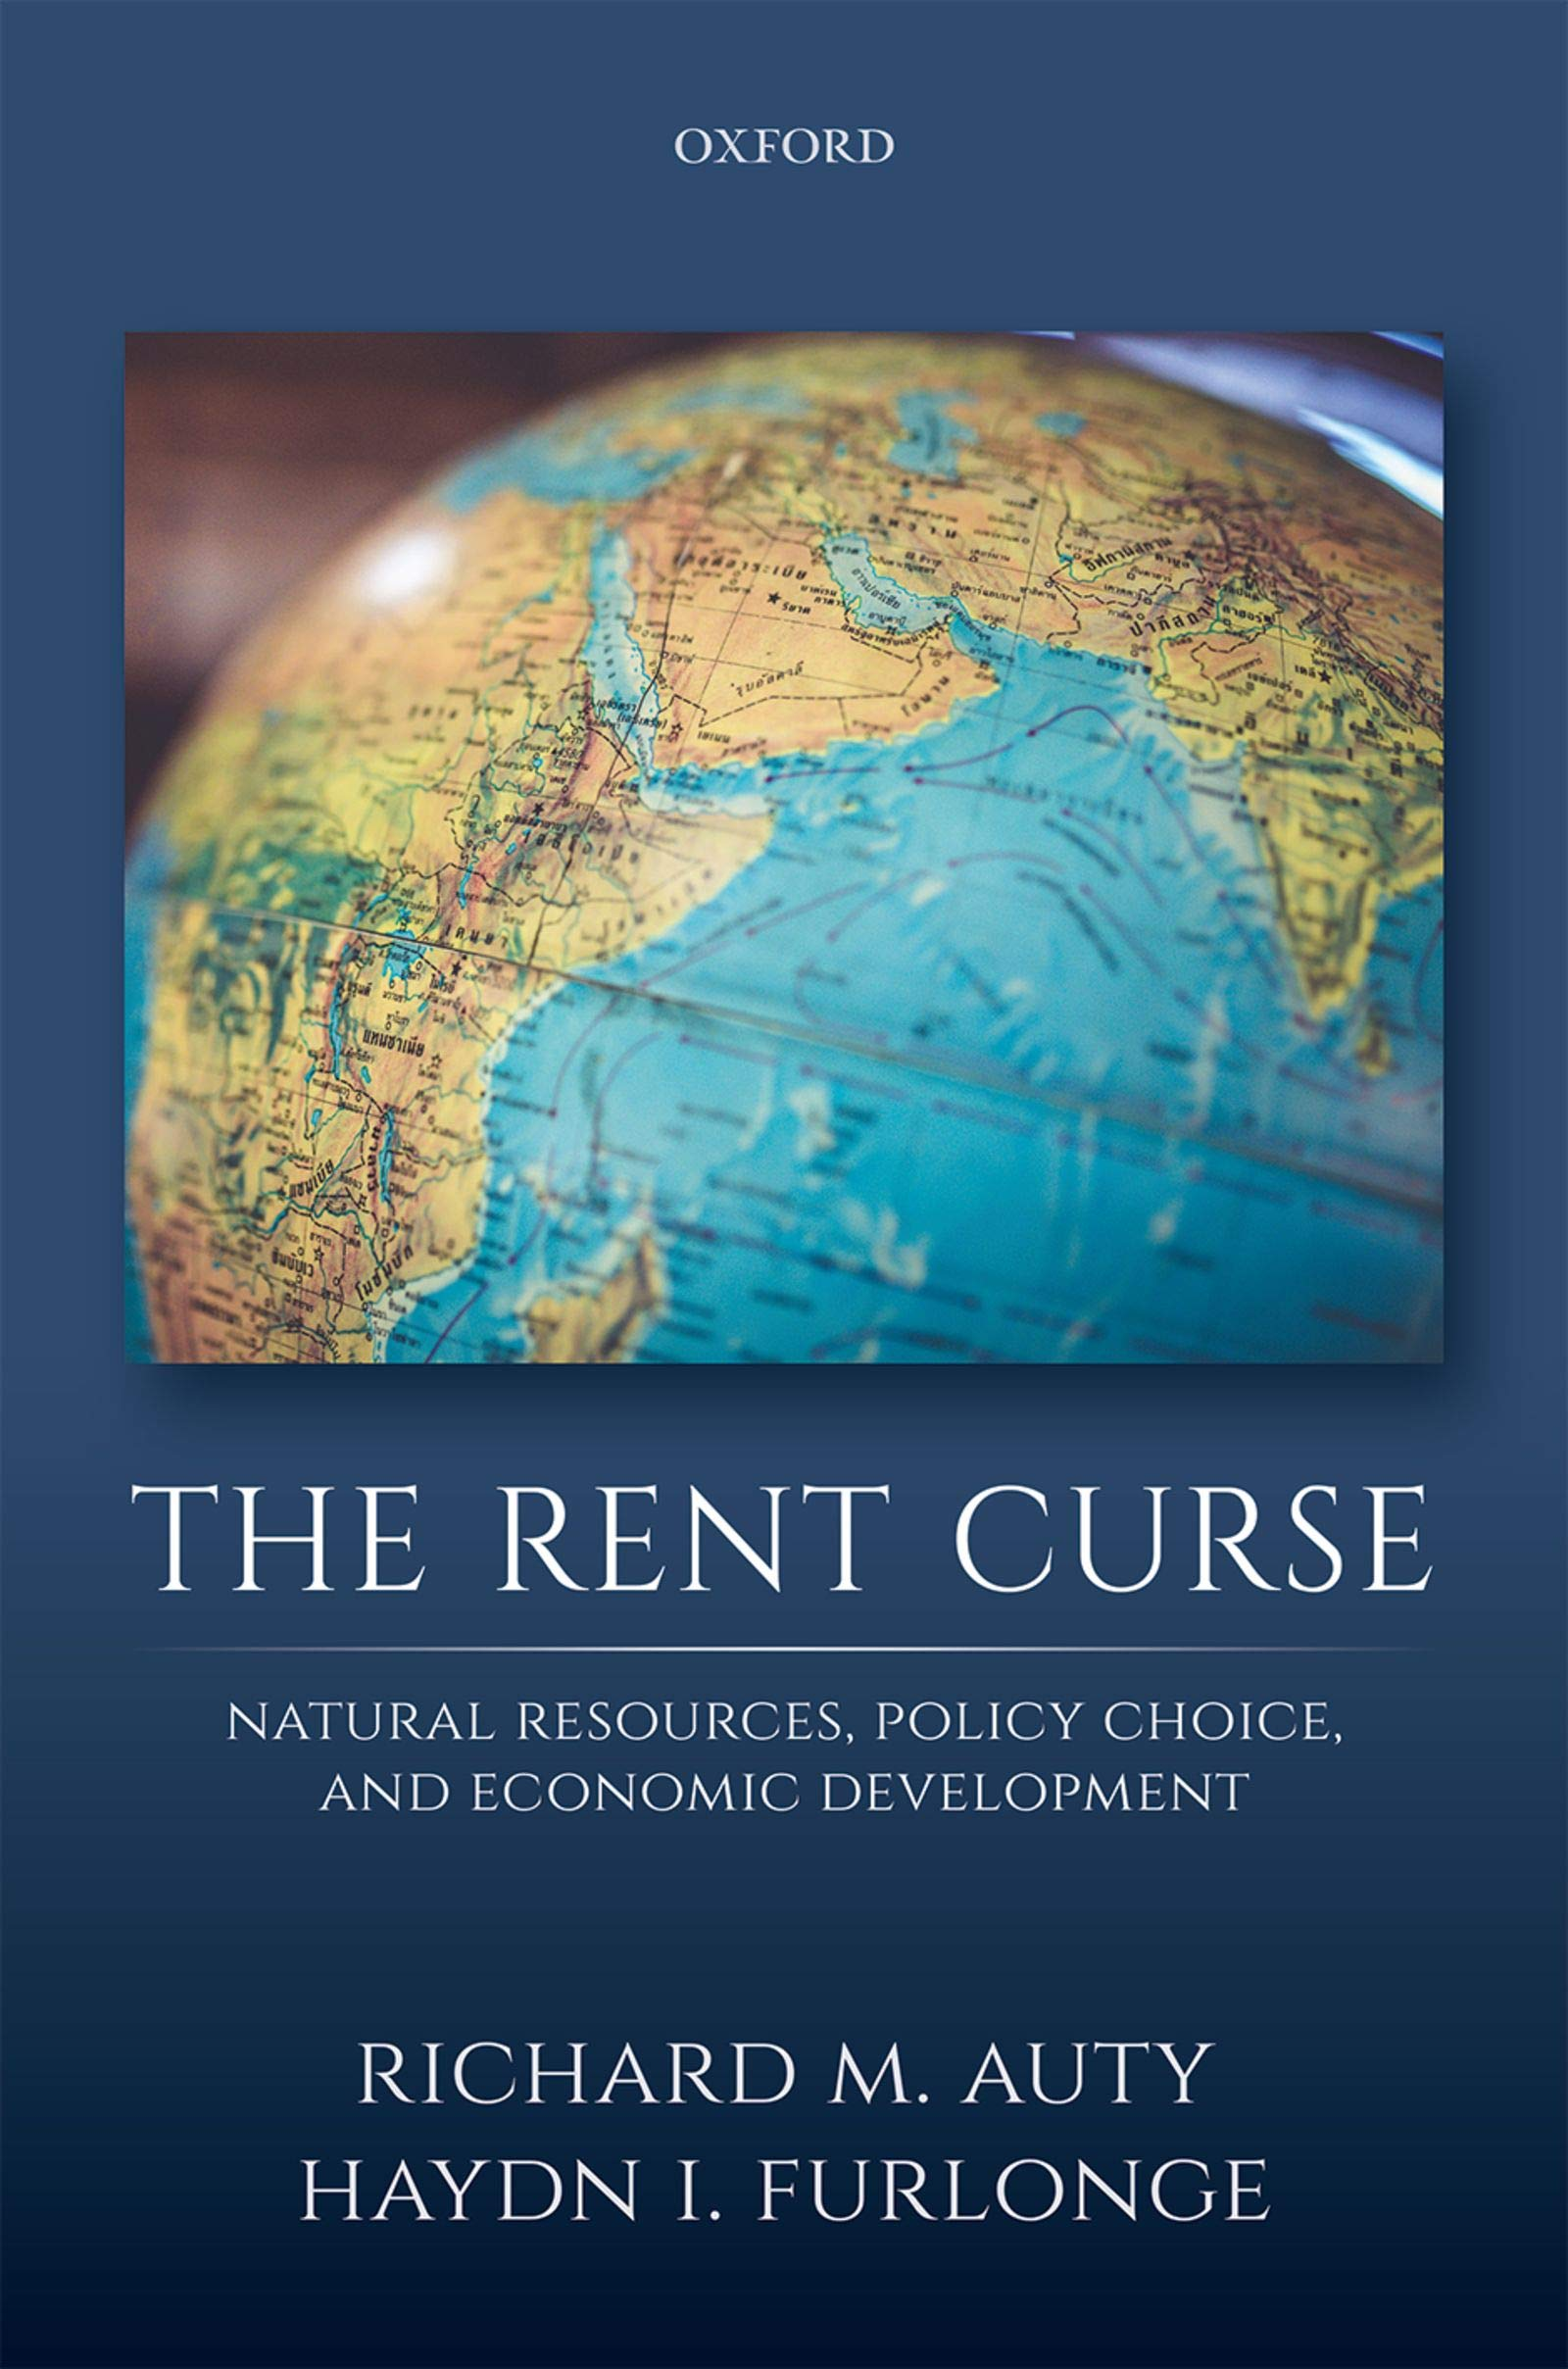 The Rent Curse: Natural Resources, Policy Choice, and Economic Development